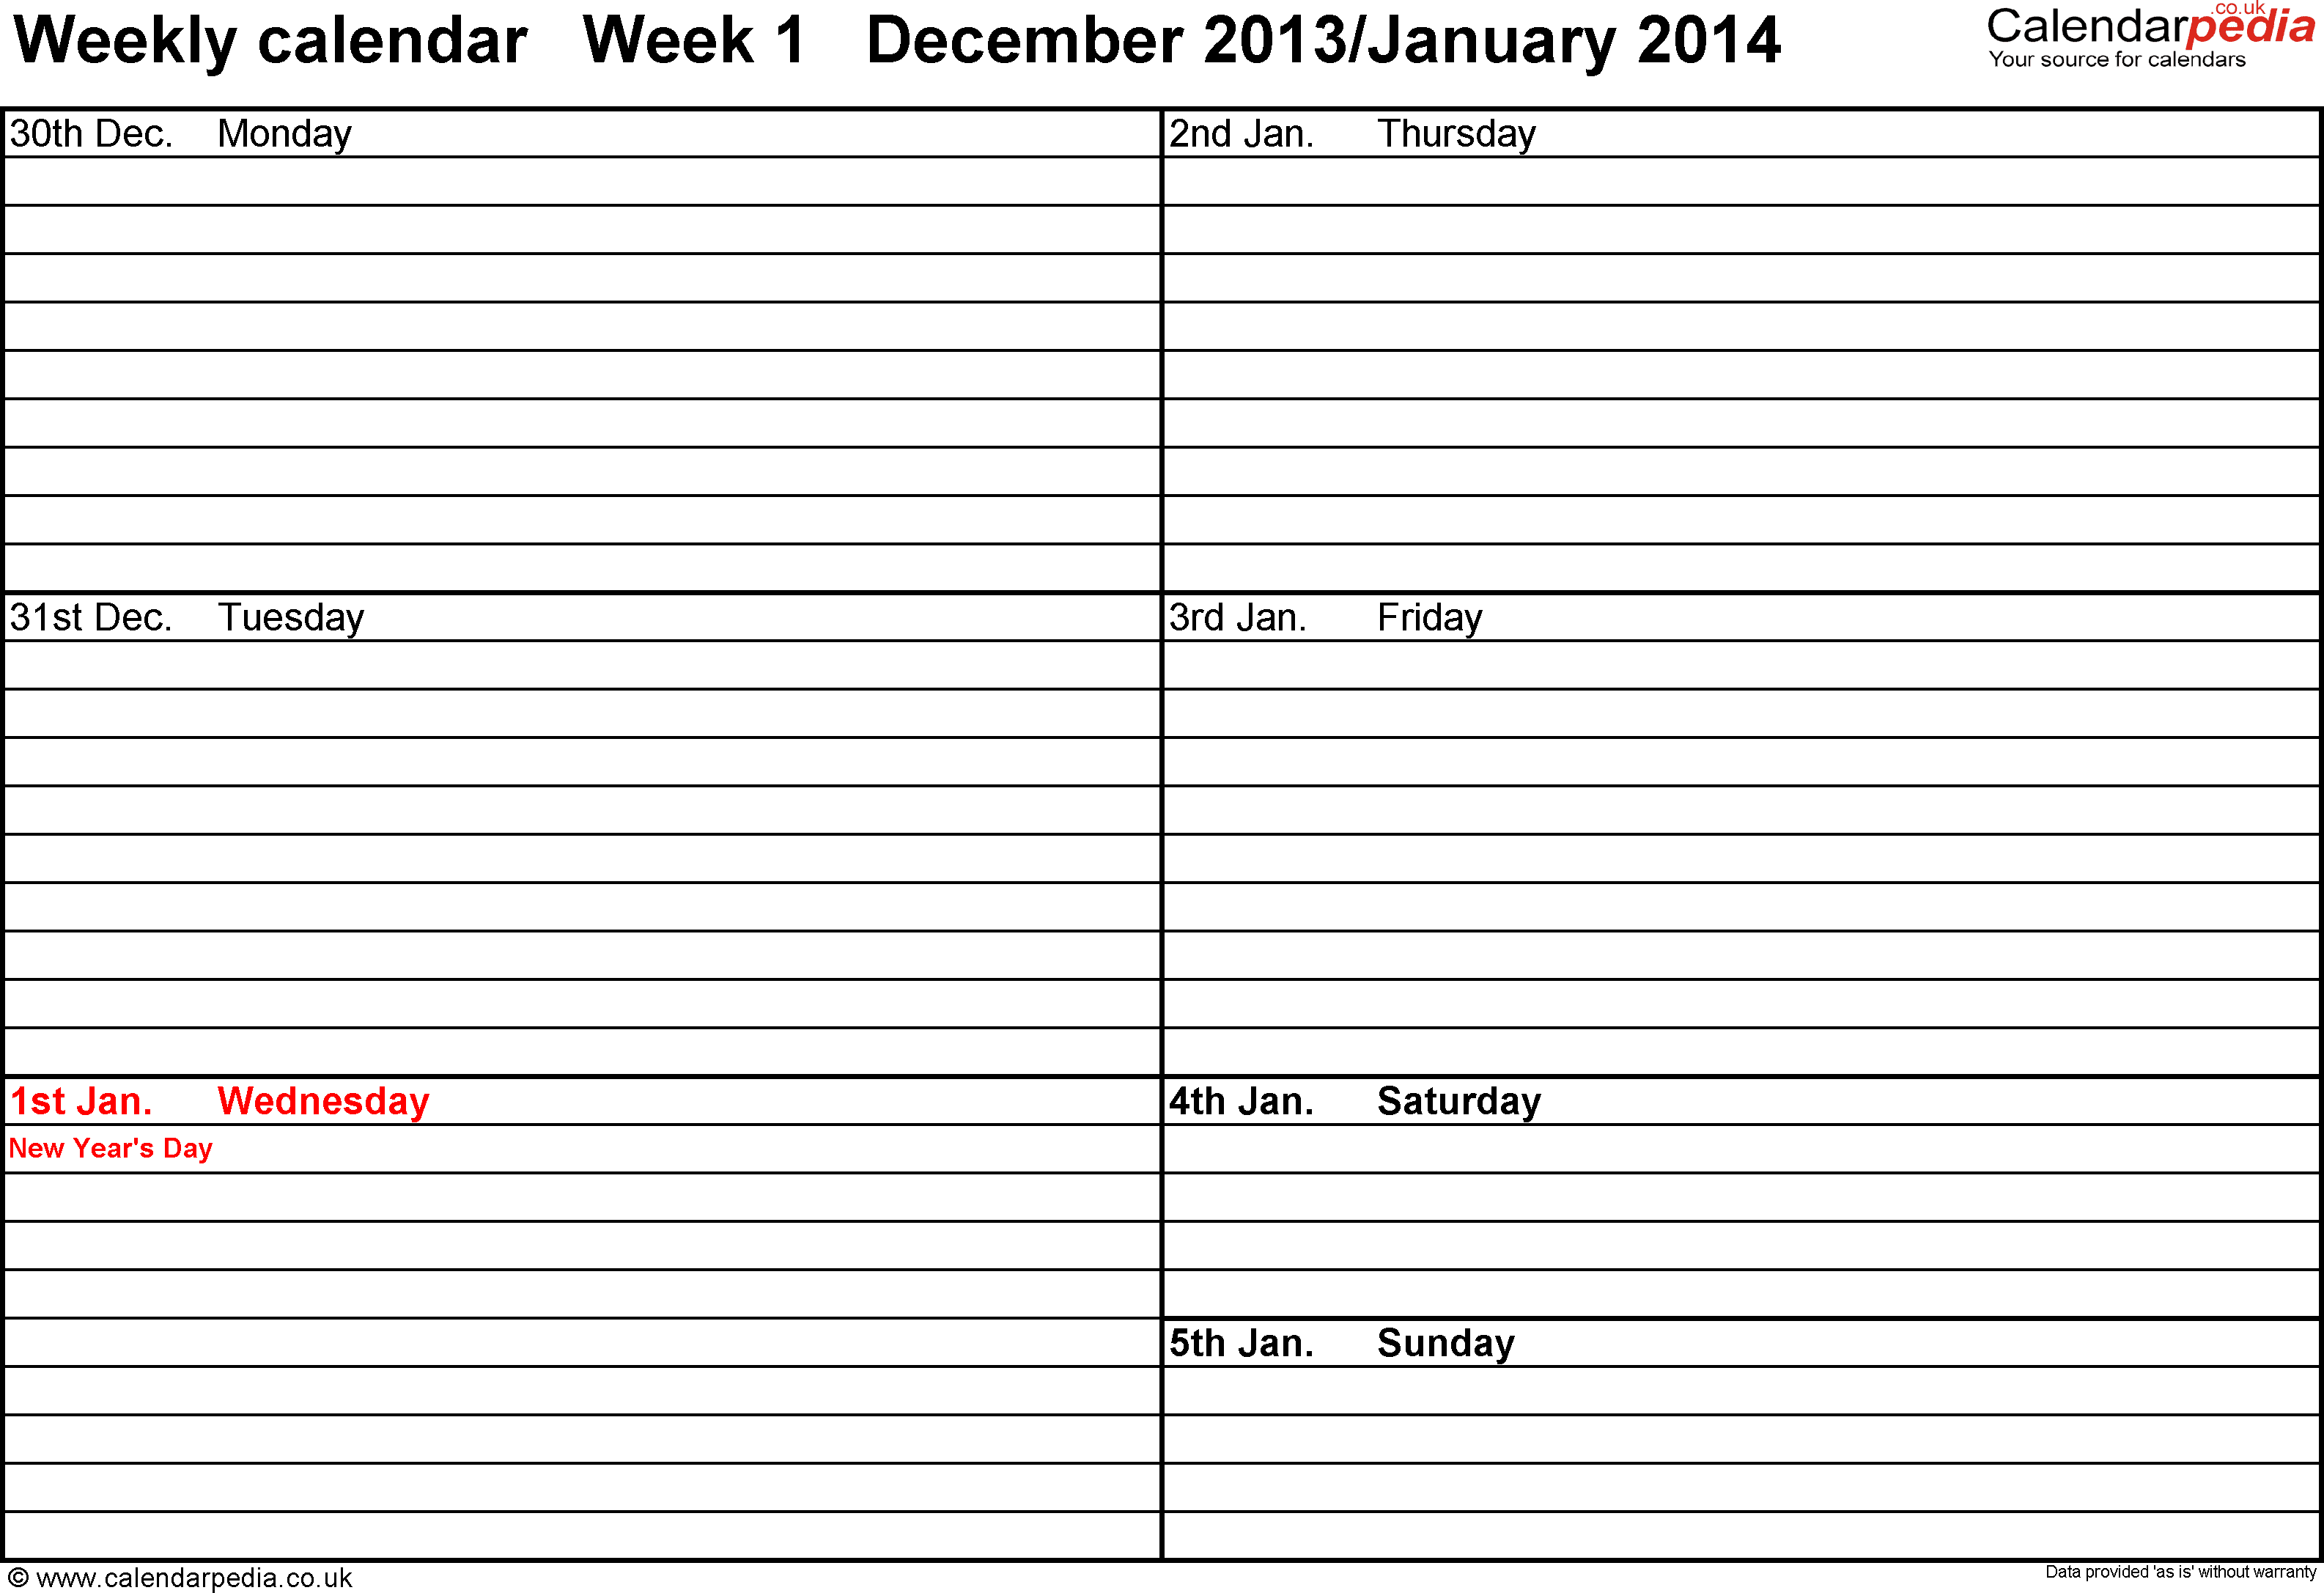 excel template 3 weekly calendar 2014 landscape orientation 53 pages 1 calendar